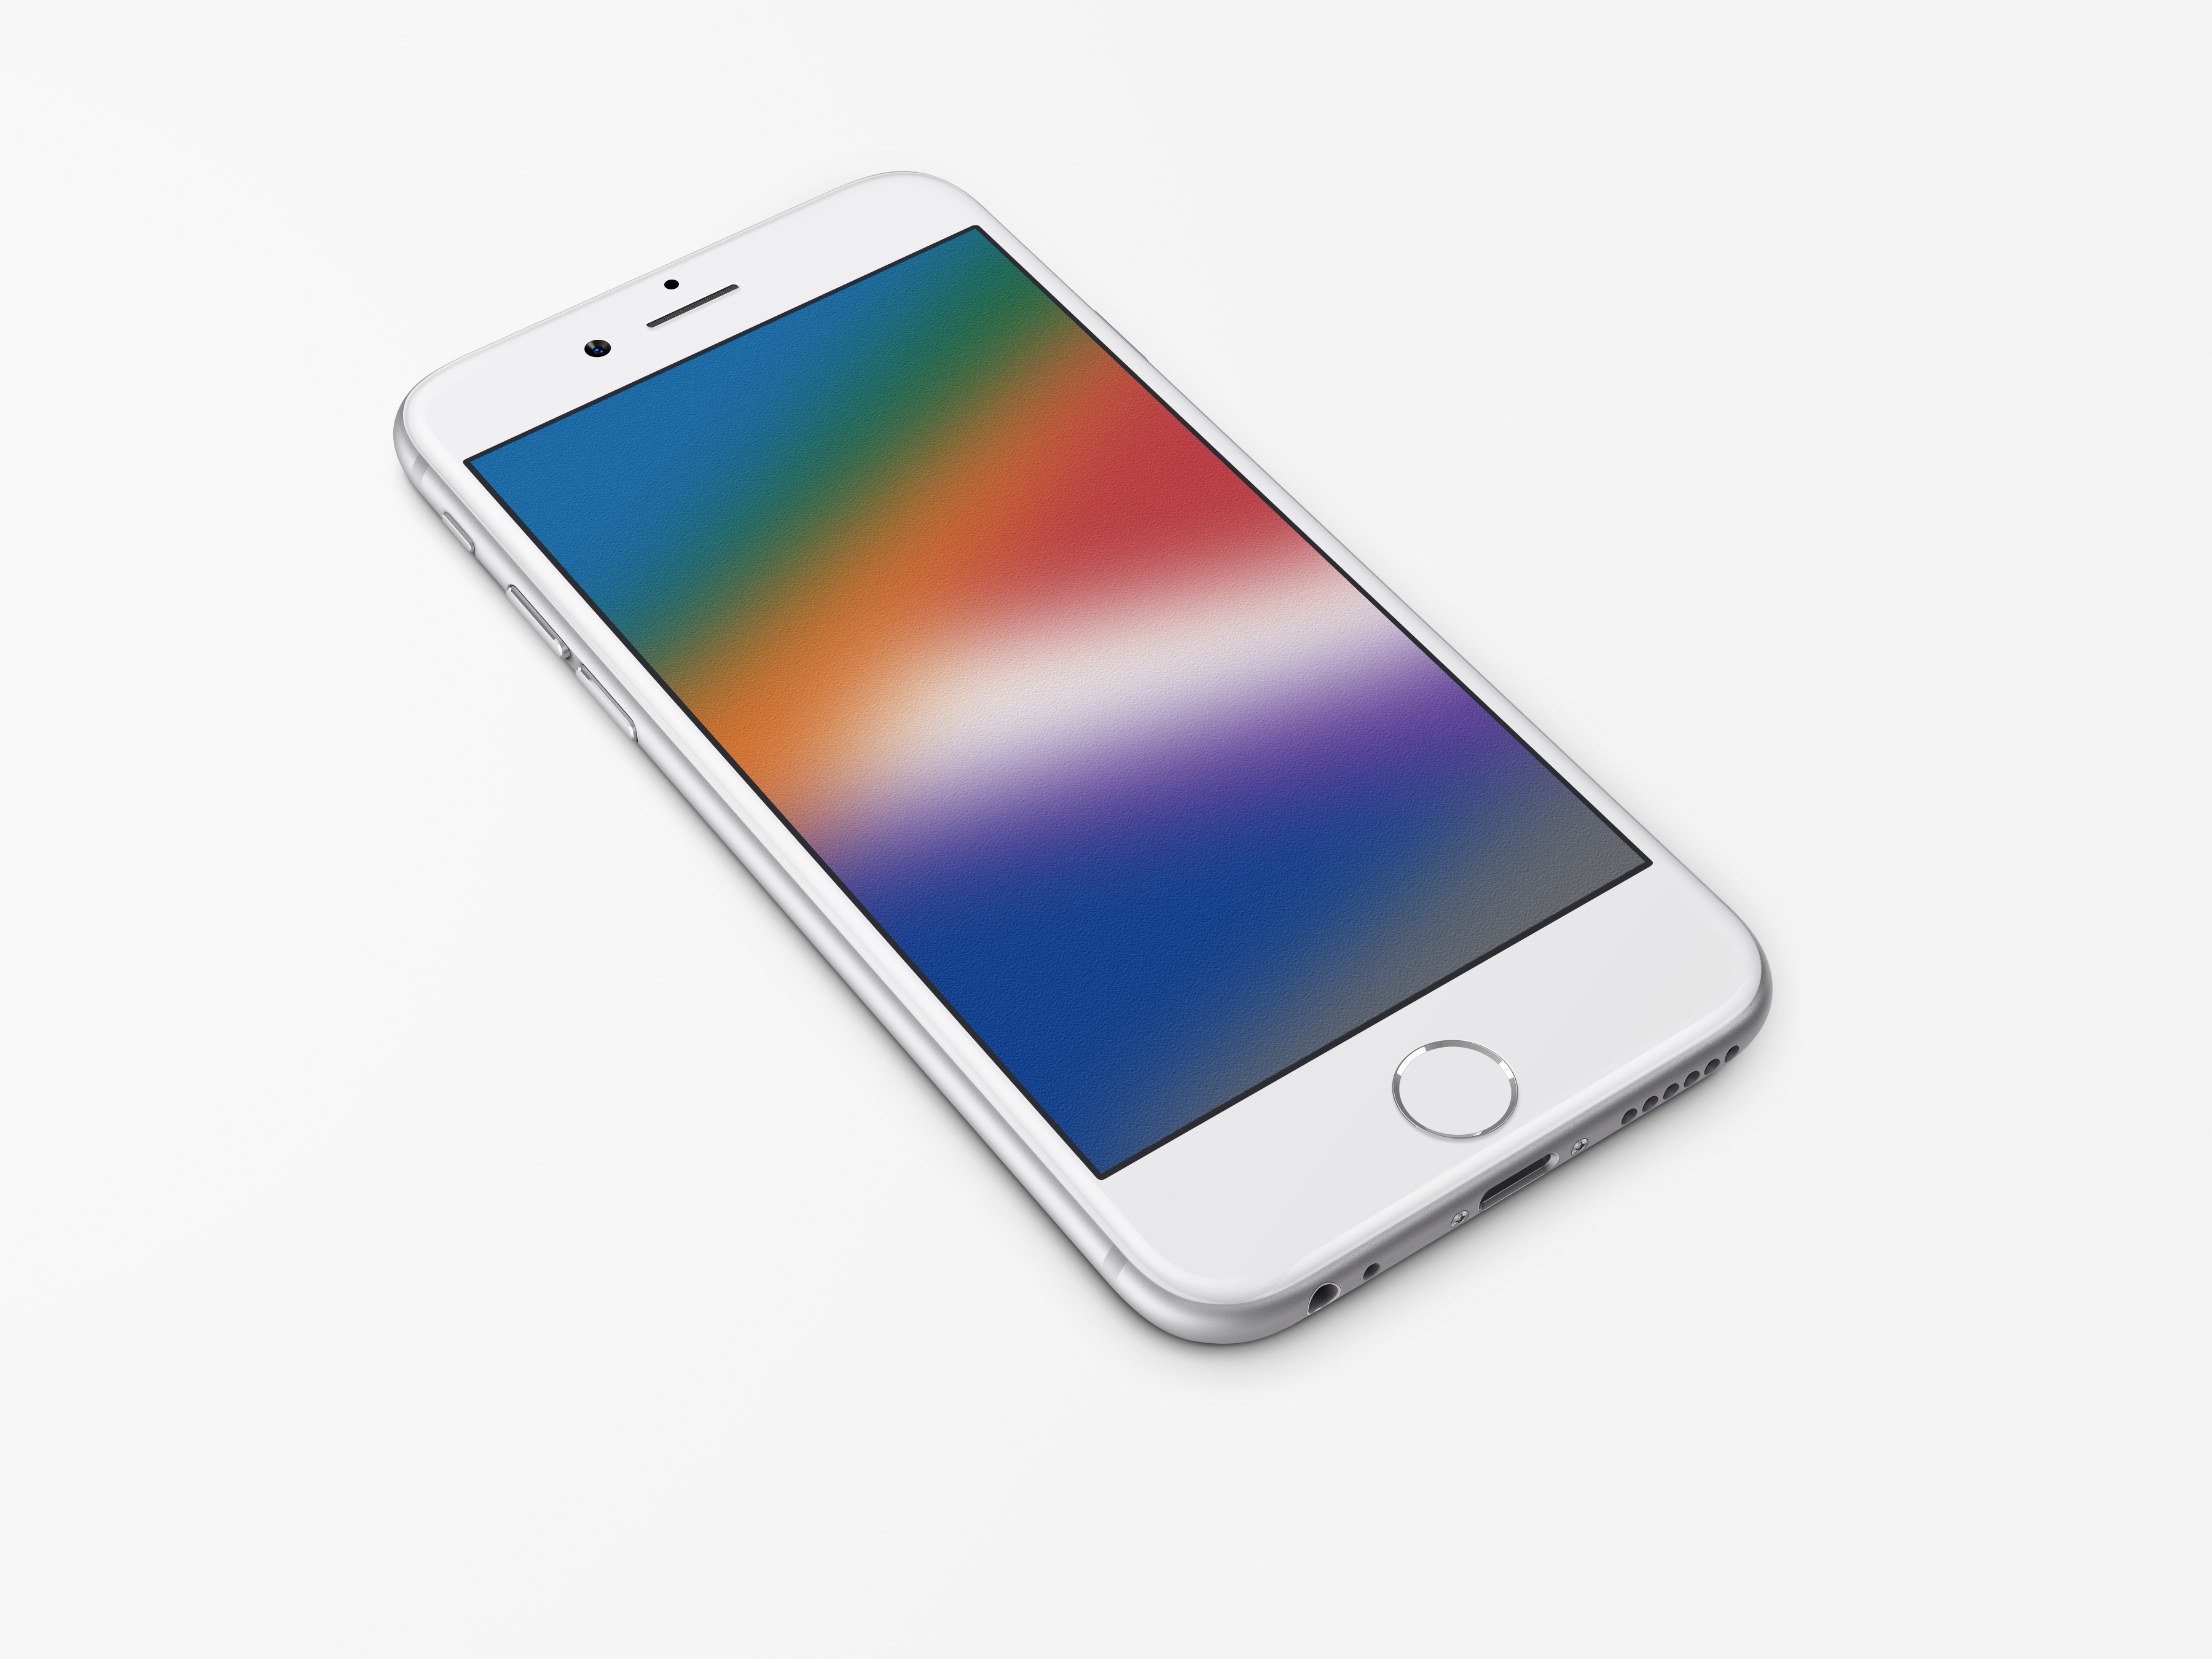 Texture-Colour-Blur2 Wallpaper for iPhone 6 and 6+